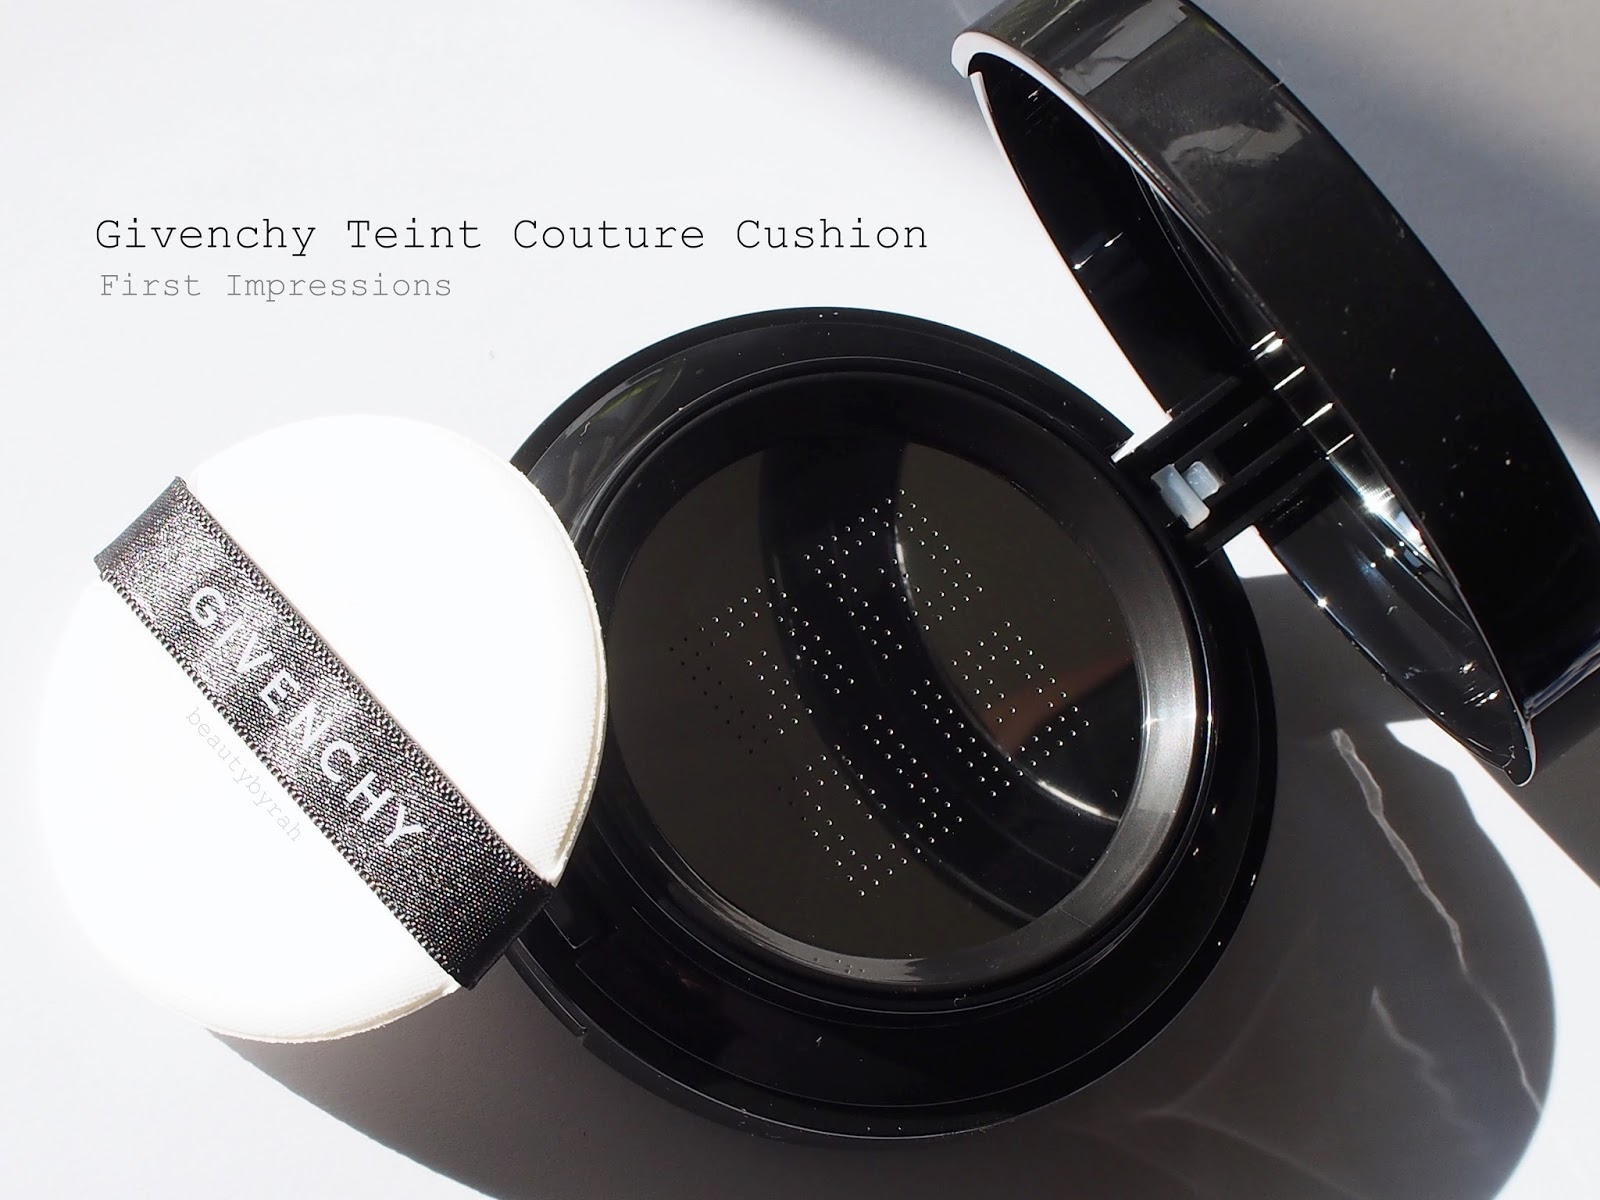 Givenchy's Teint Couture Cushion in #4 Fresh Beige Review